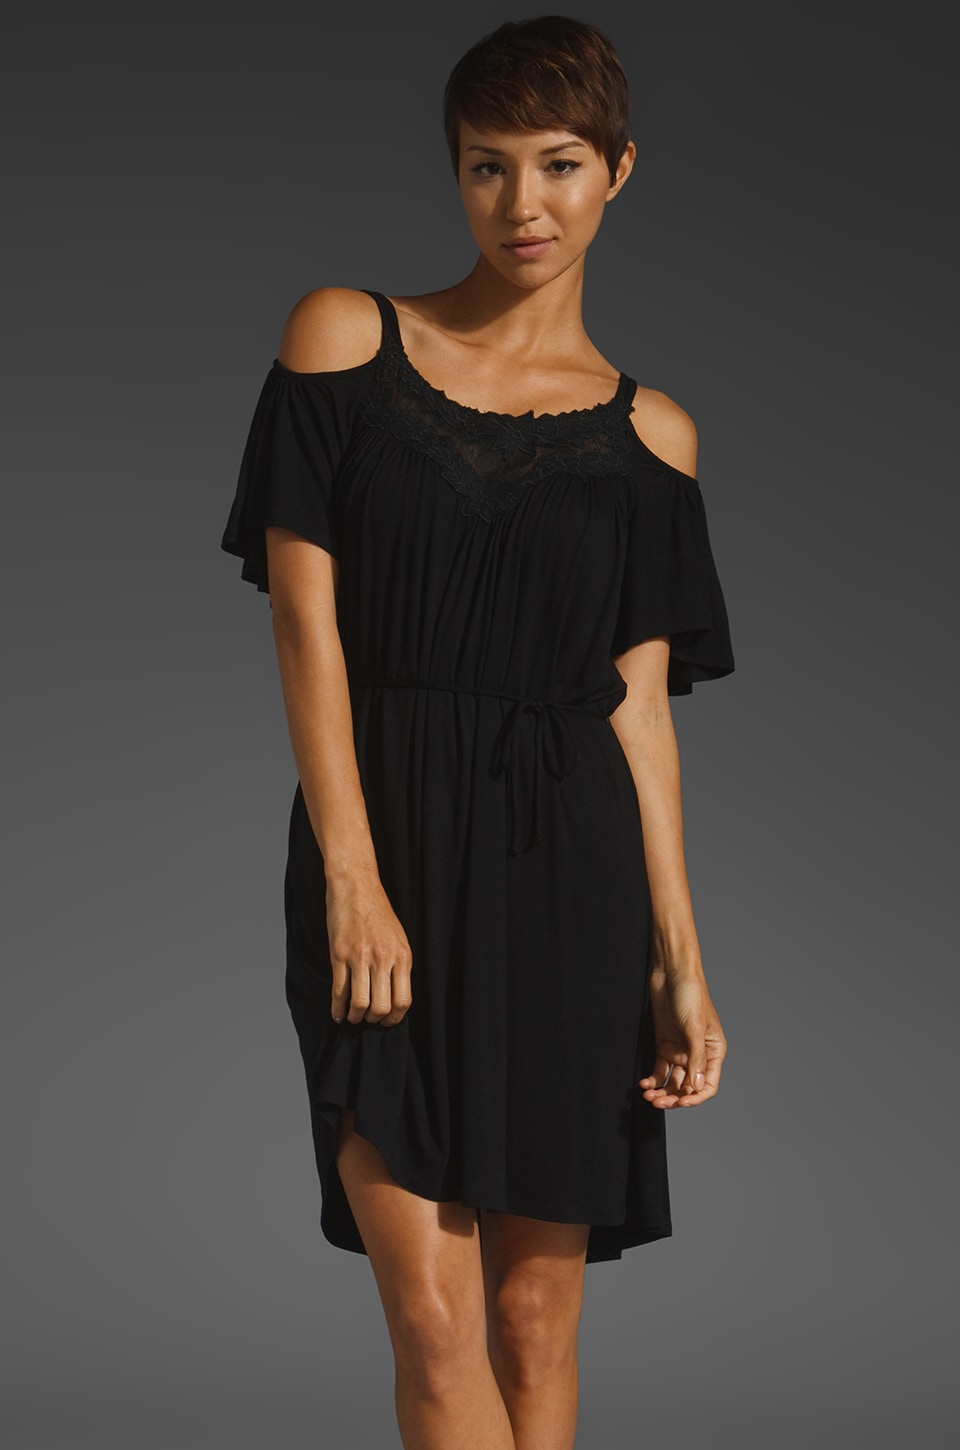 Ella Moss Marisol Dress in Black